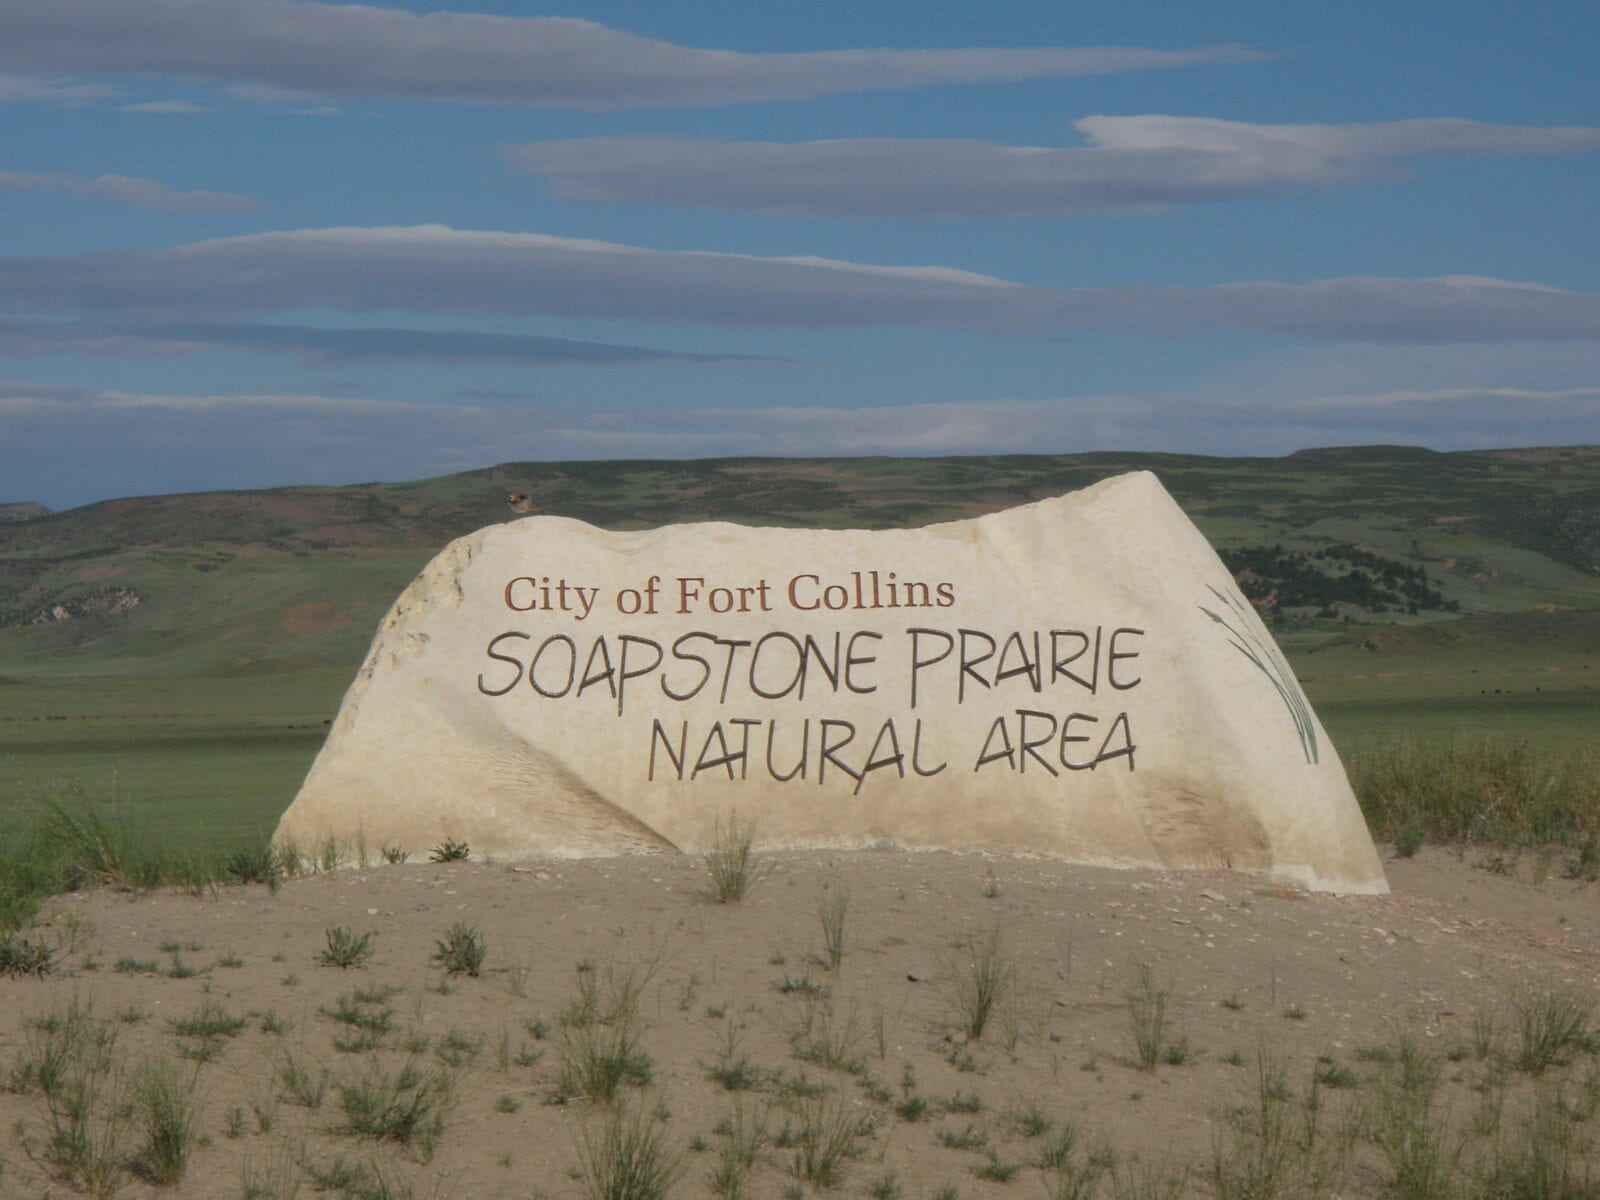 Image of the rock sign at Soapstone Prairie Natural Area in Fort Collings, Colorado